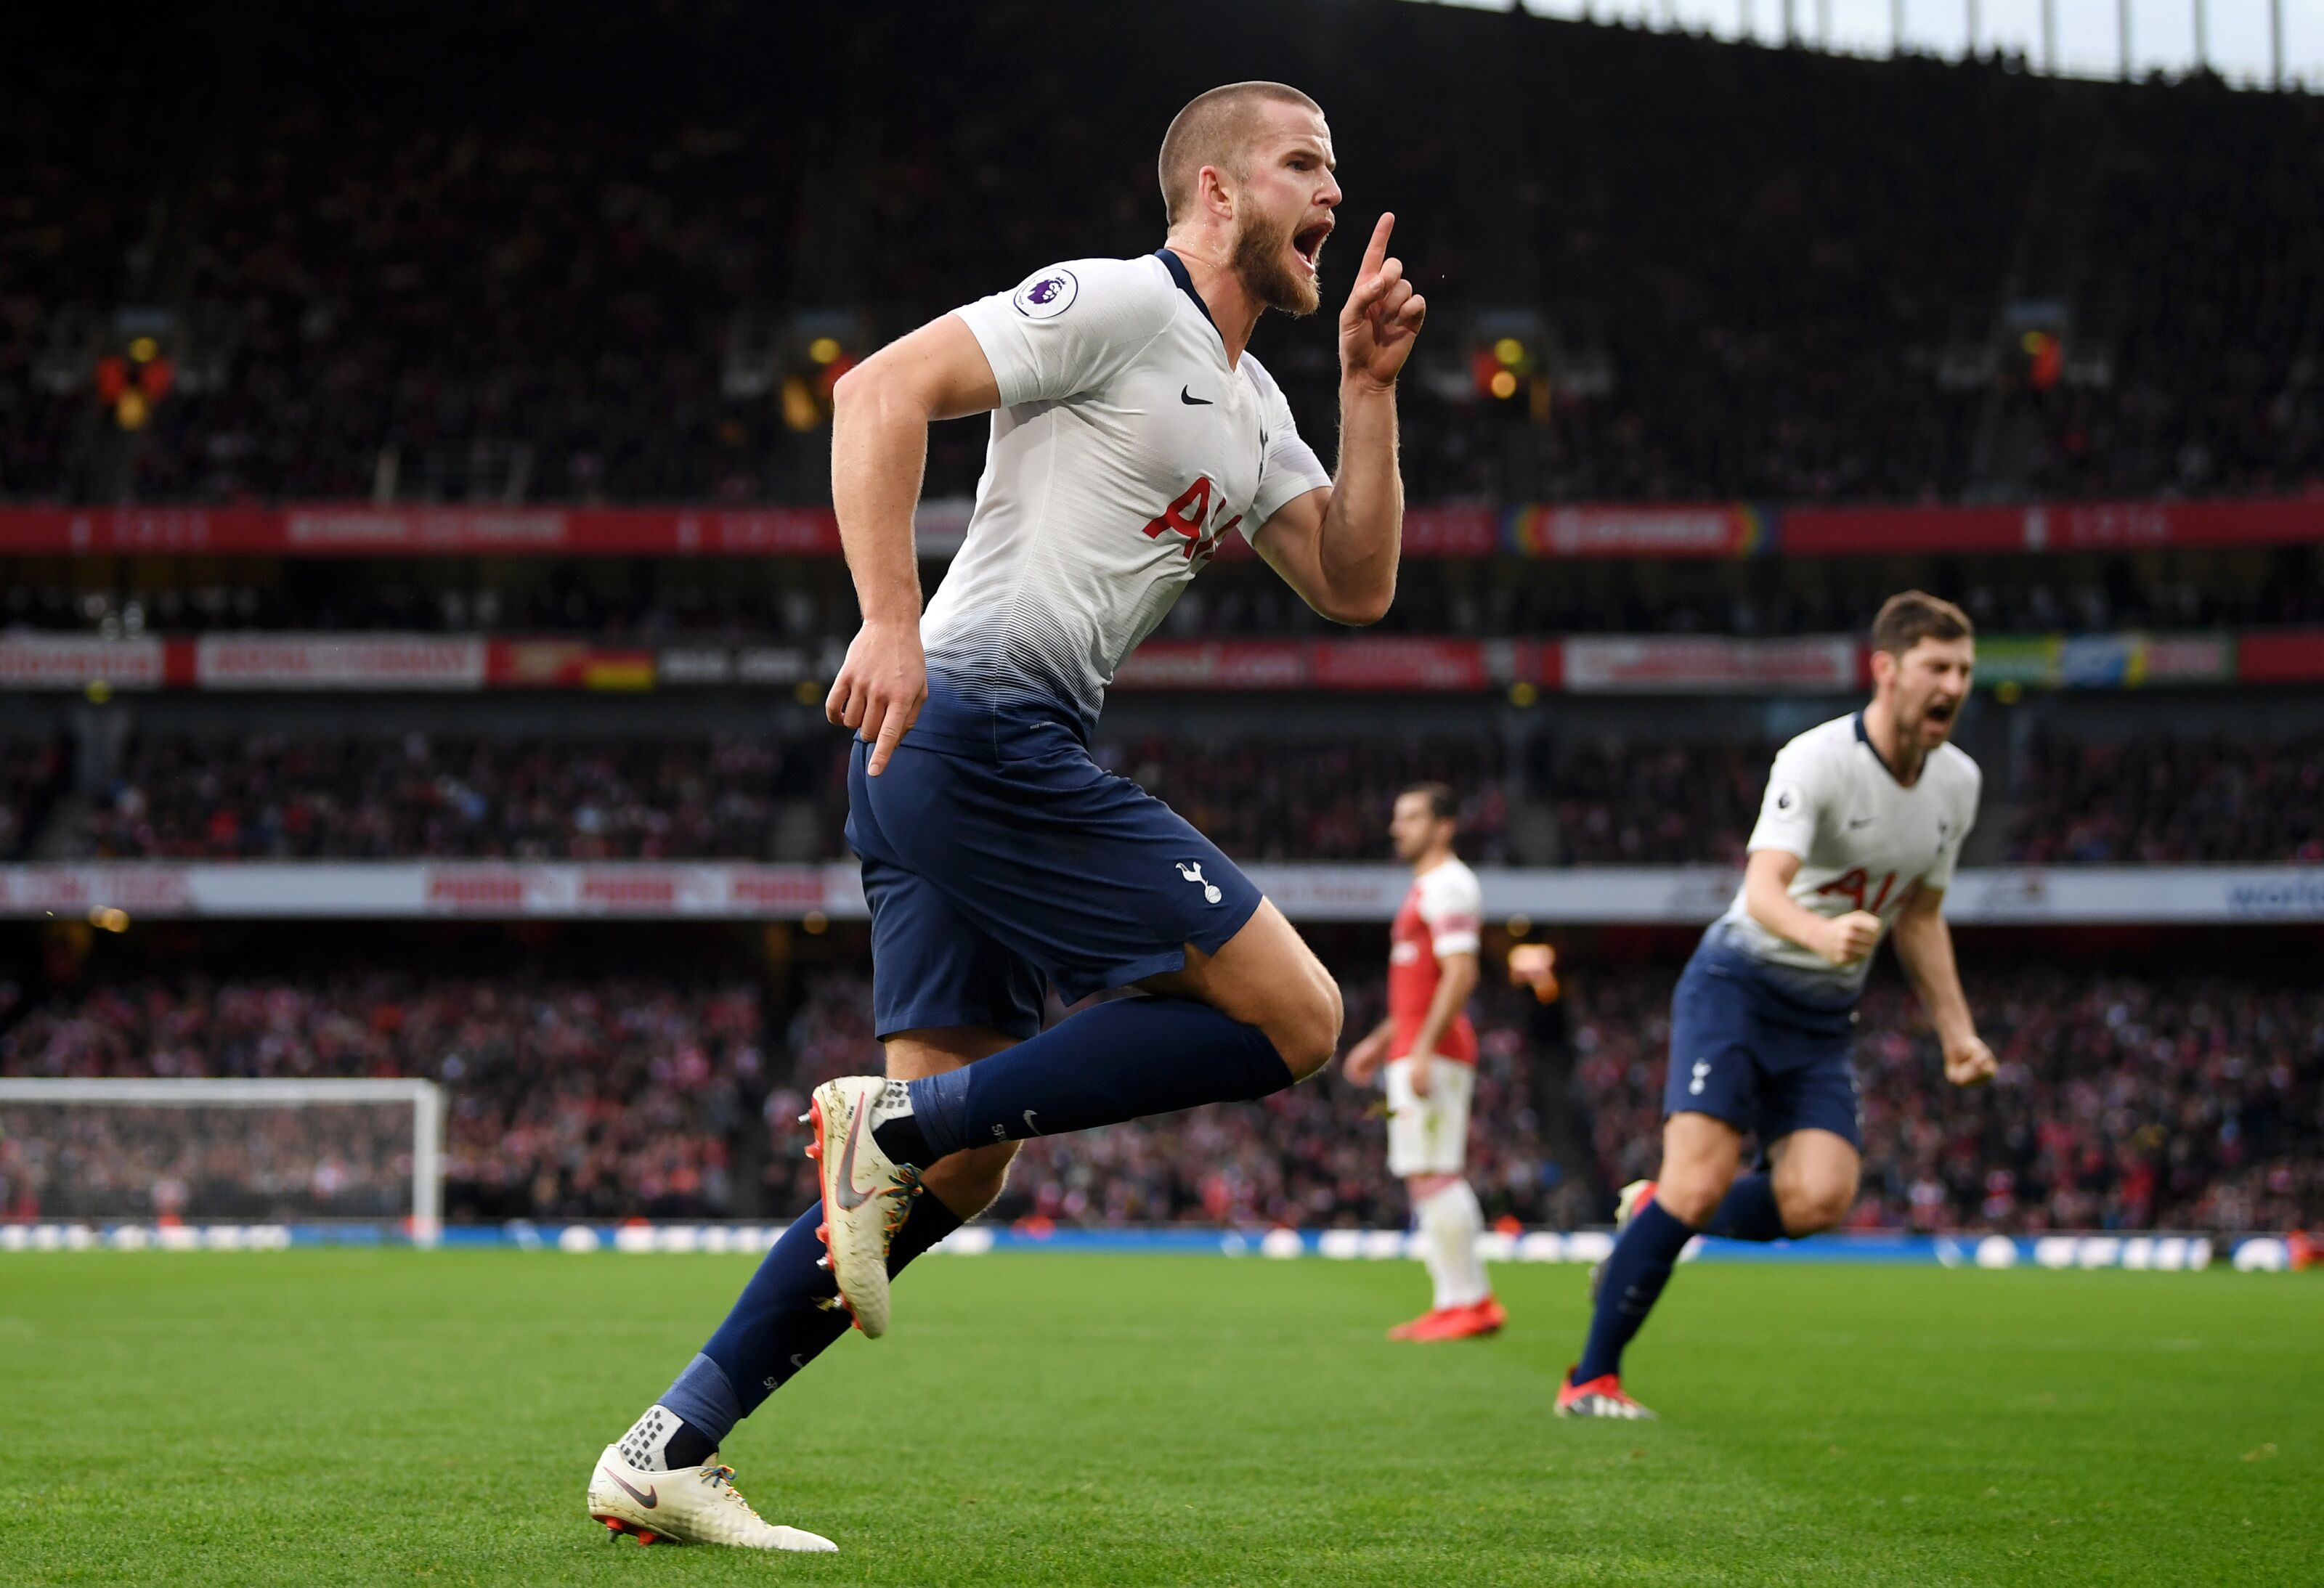 Manchester United interested in signing Eric Dier from Tottenham Hotspur?